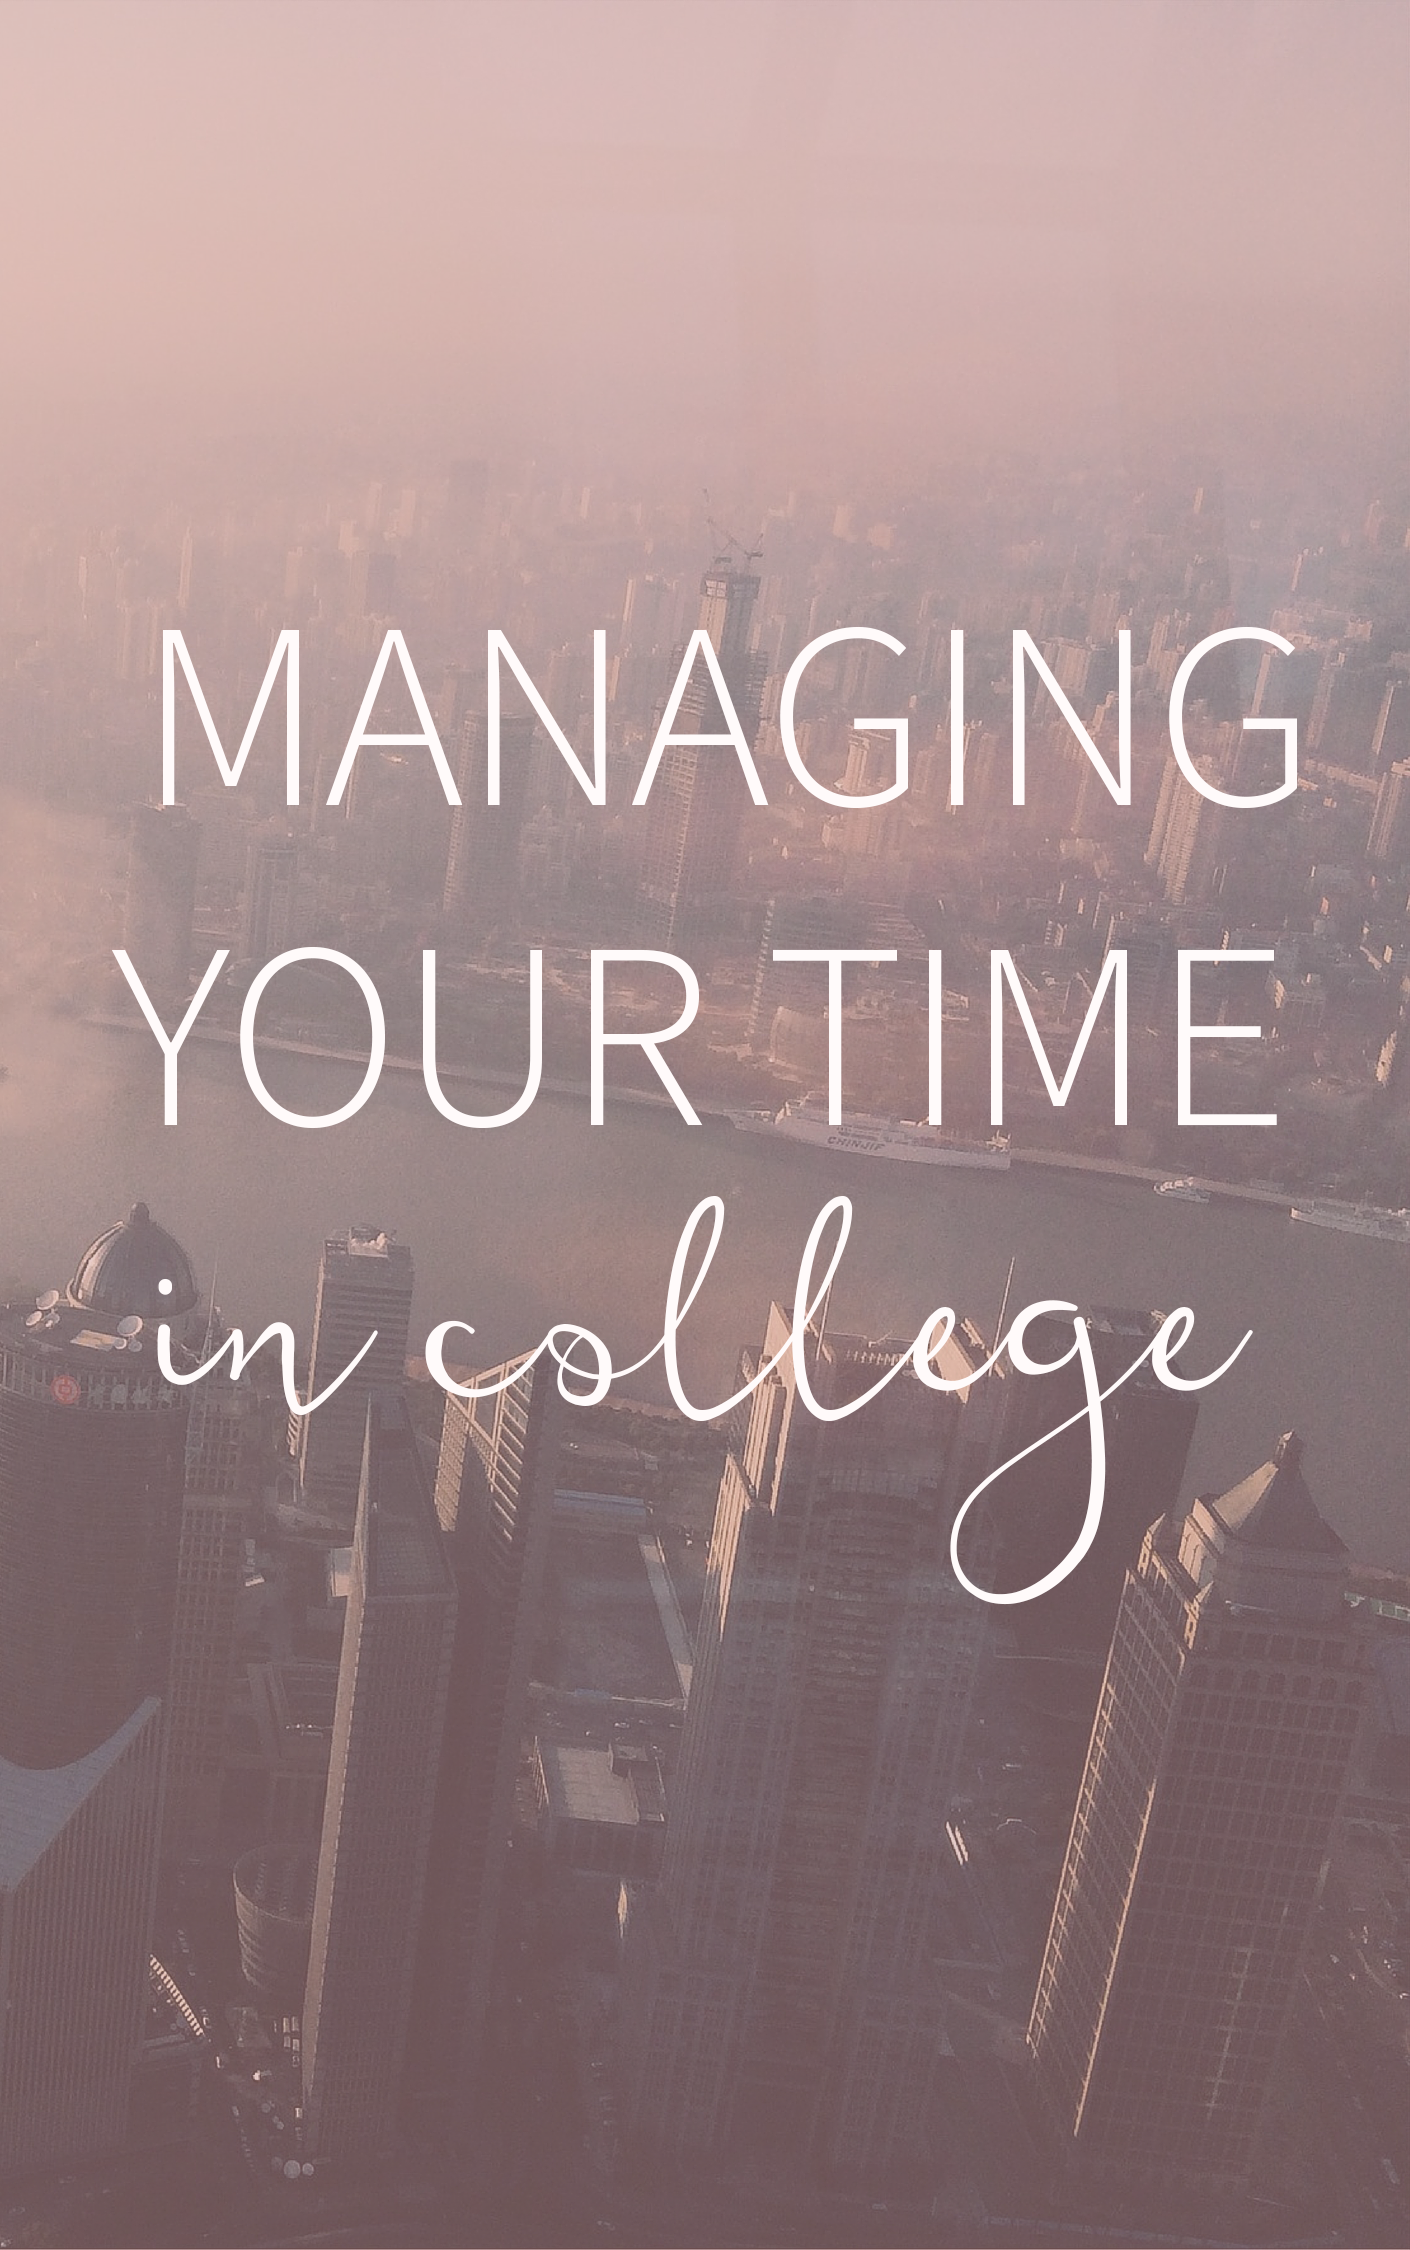 how to handle a busy college semester like a pro education college student tips for managing your time better be productive by doing more than just